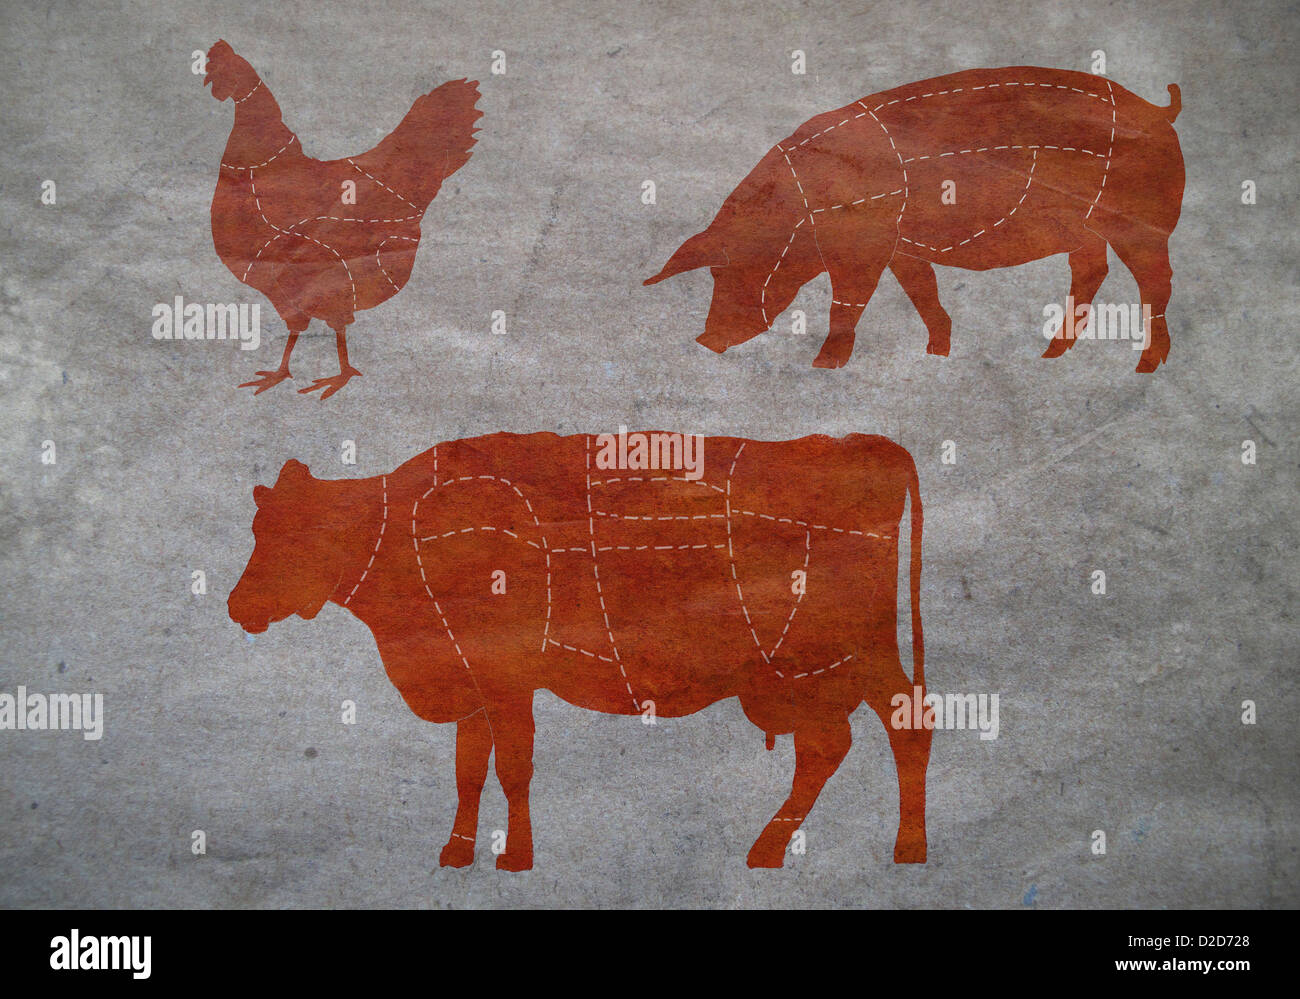 A Butchers Diagram Of Cow Stock Photos Pig Butcher Chicken And Image